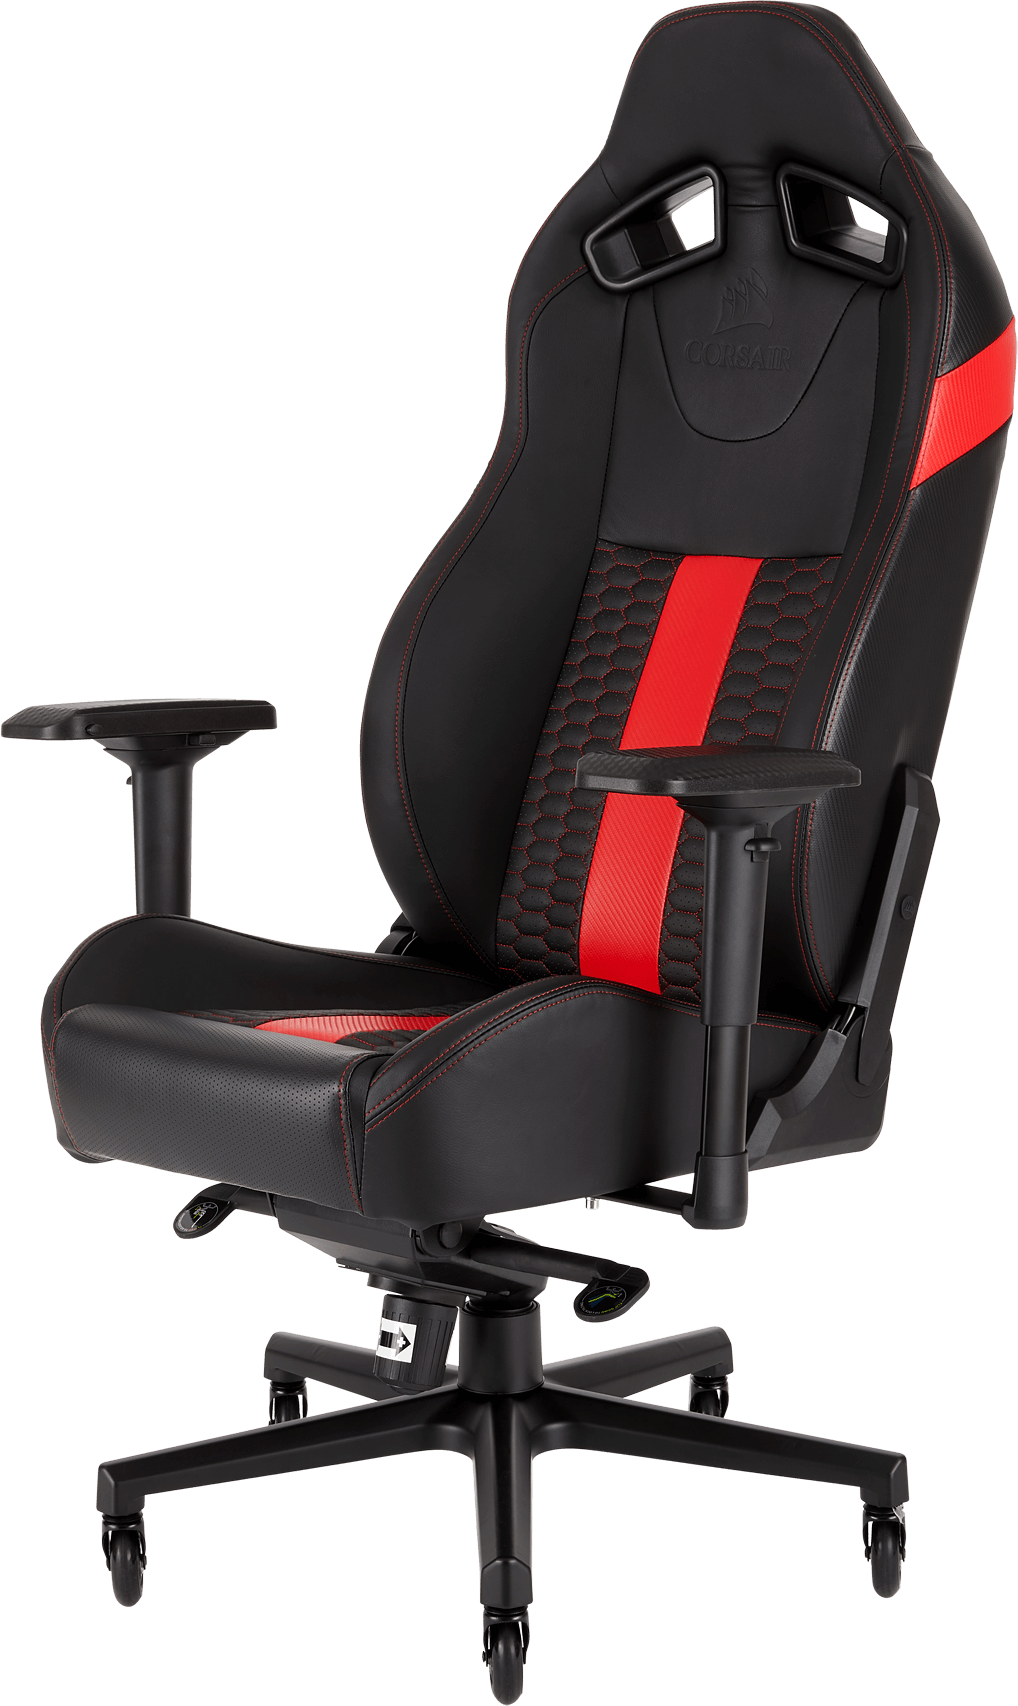 Corsair T2 Road Warrior Gaming Chair Black Red